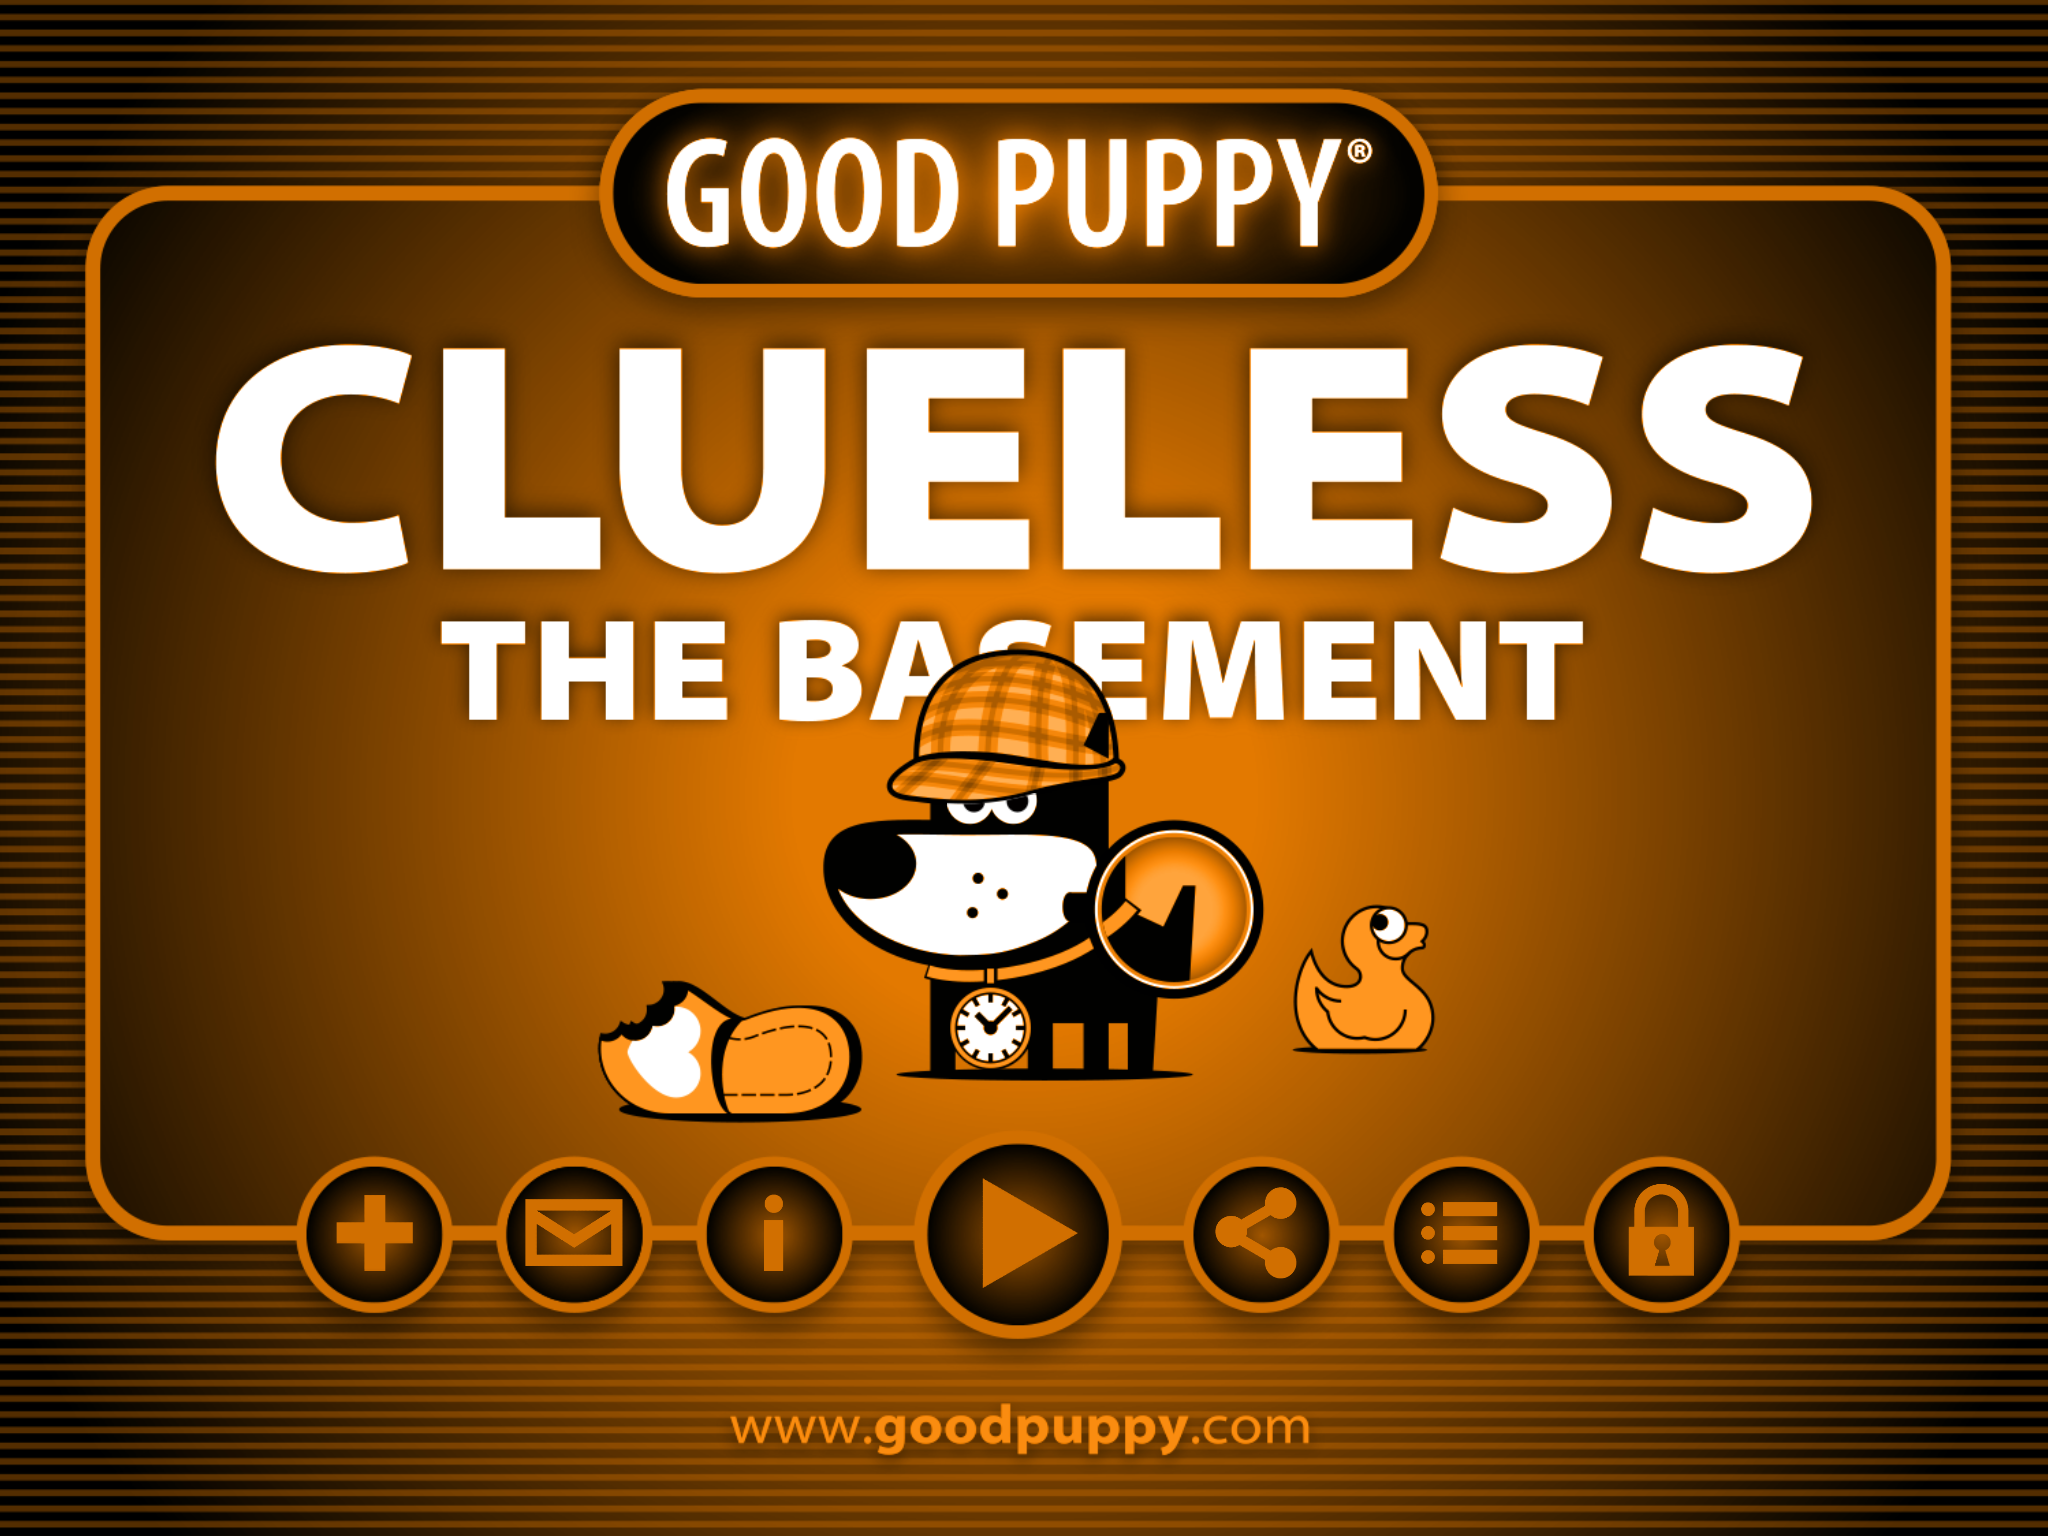 Retro 80s Action Adventure Platform Game : GOOD PUPPY CLUELESS